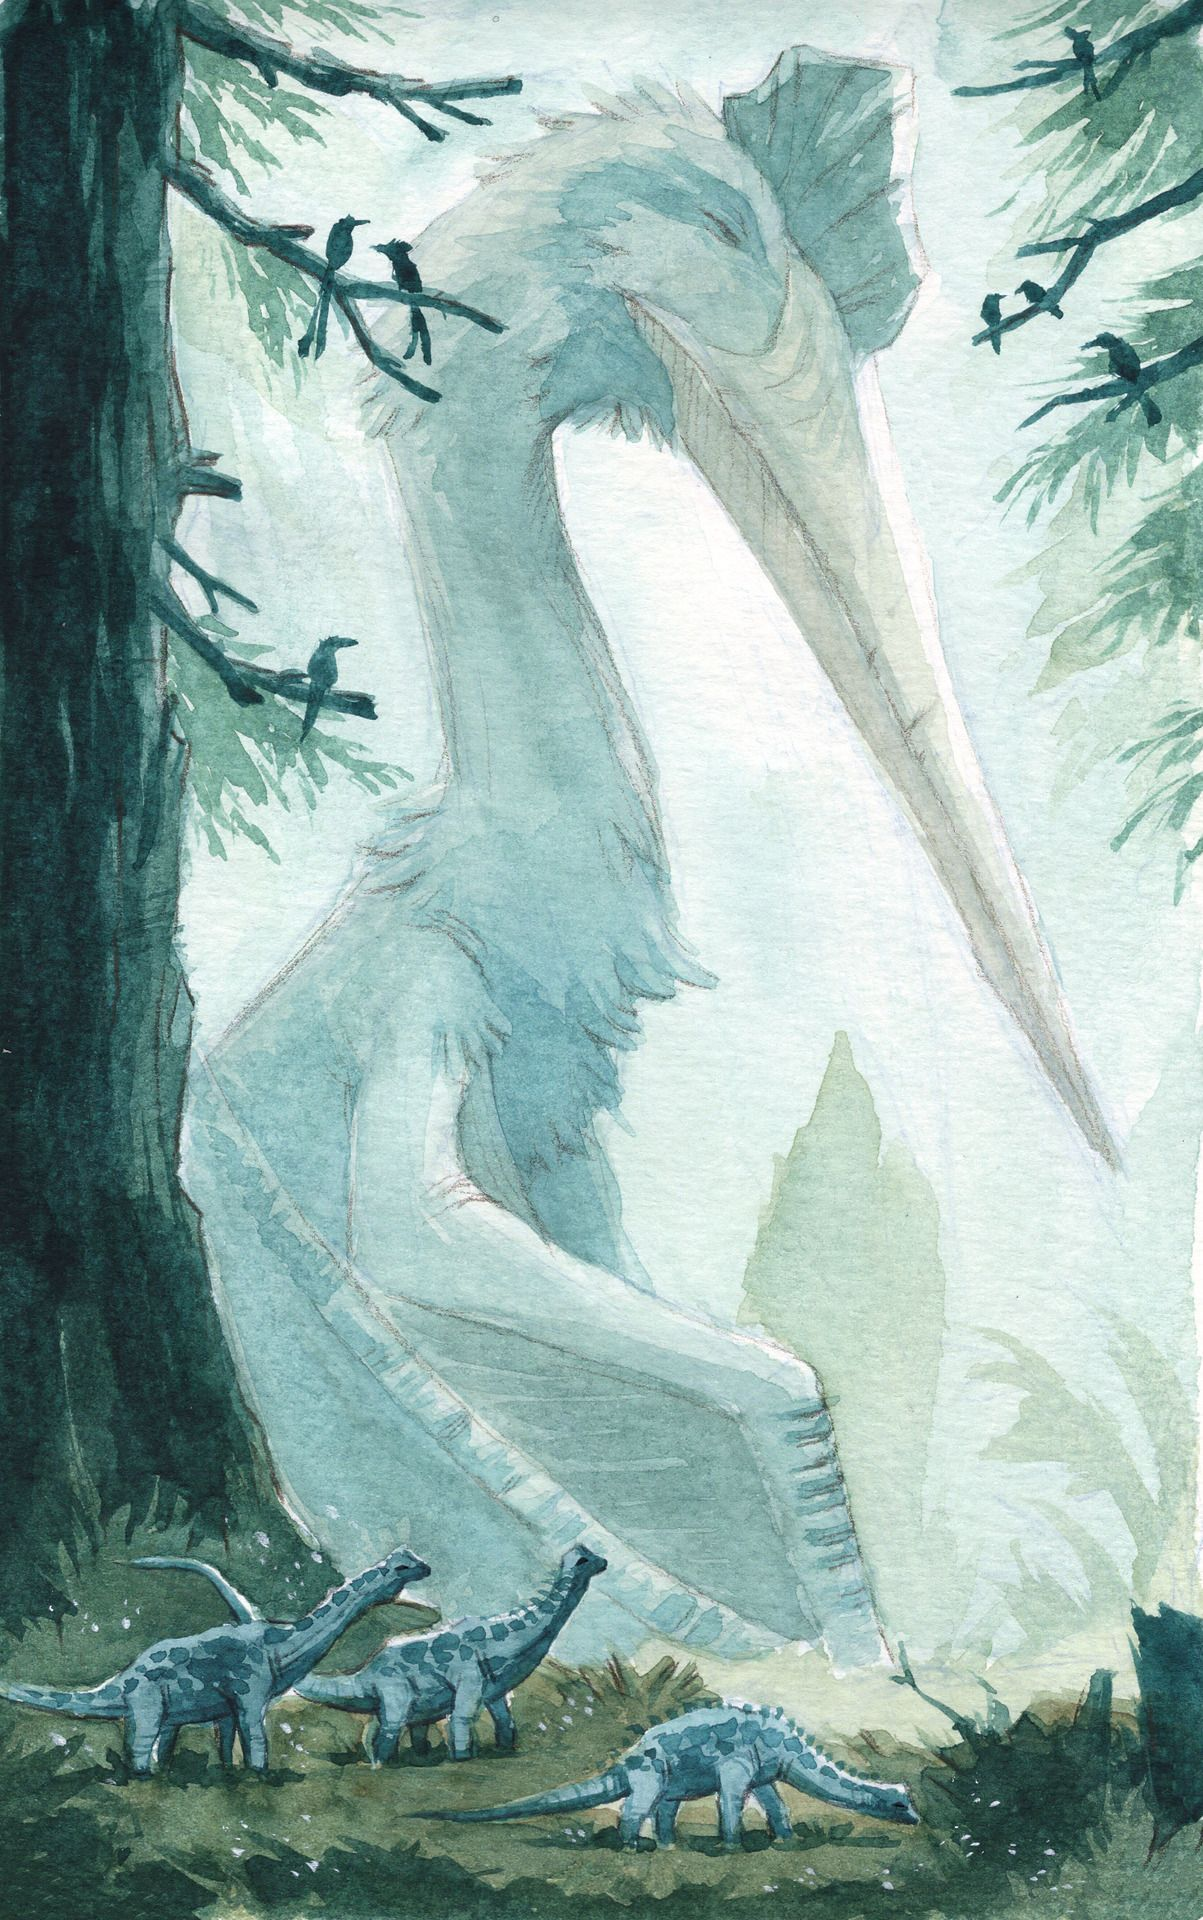 Kevan Hom: A group of young Alamosaurus wandering by a sleeping Quetzalcoatlus #prehistoricanimals